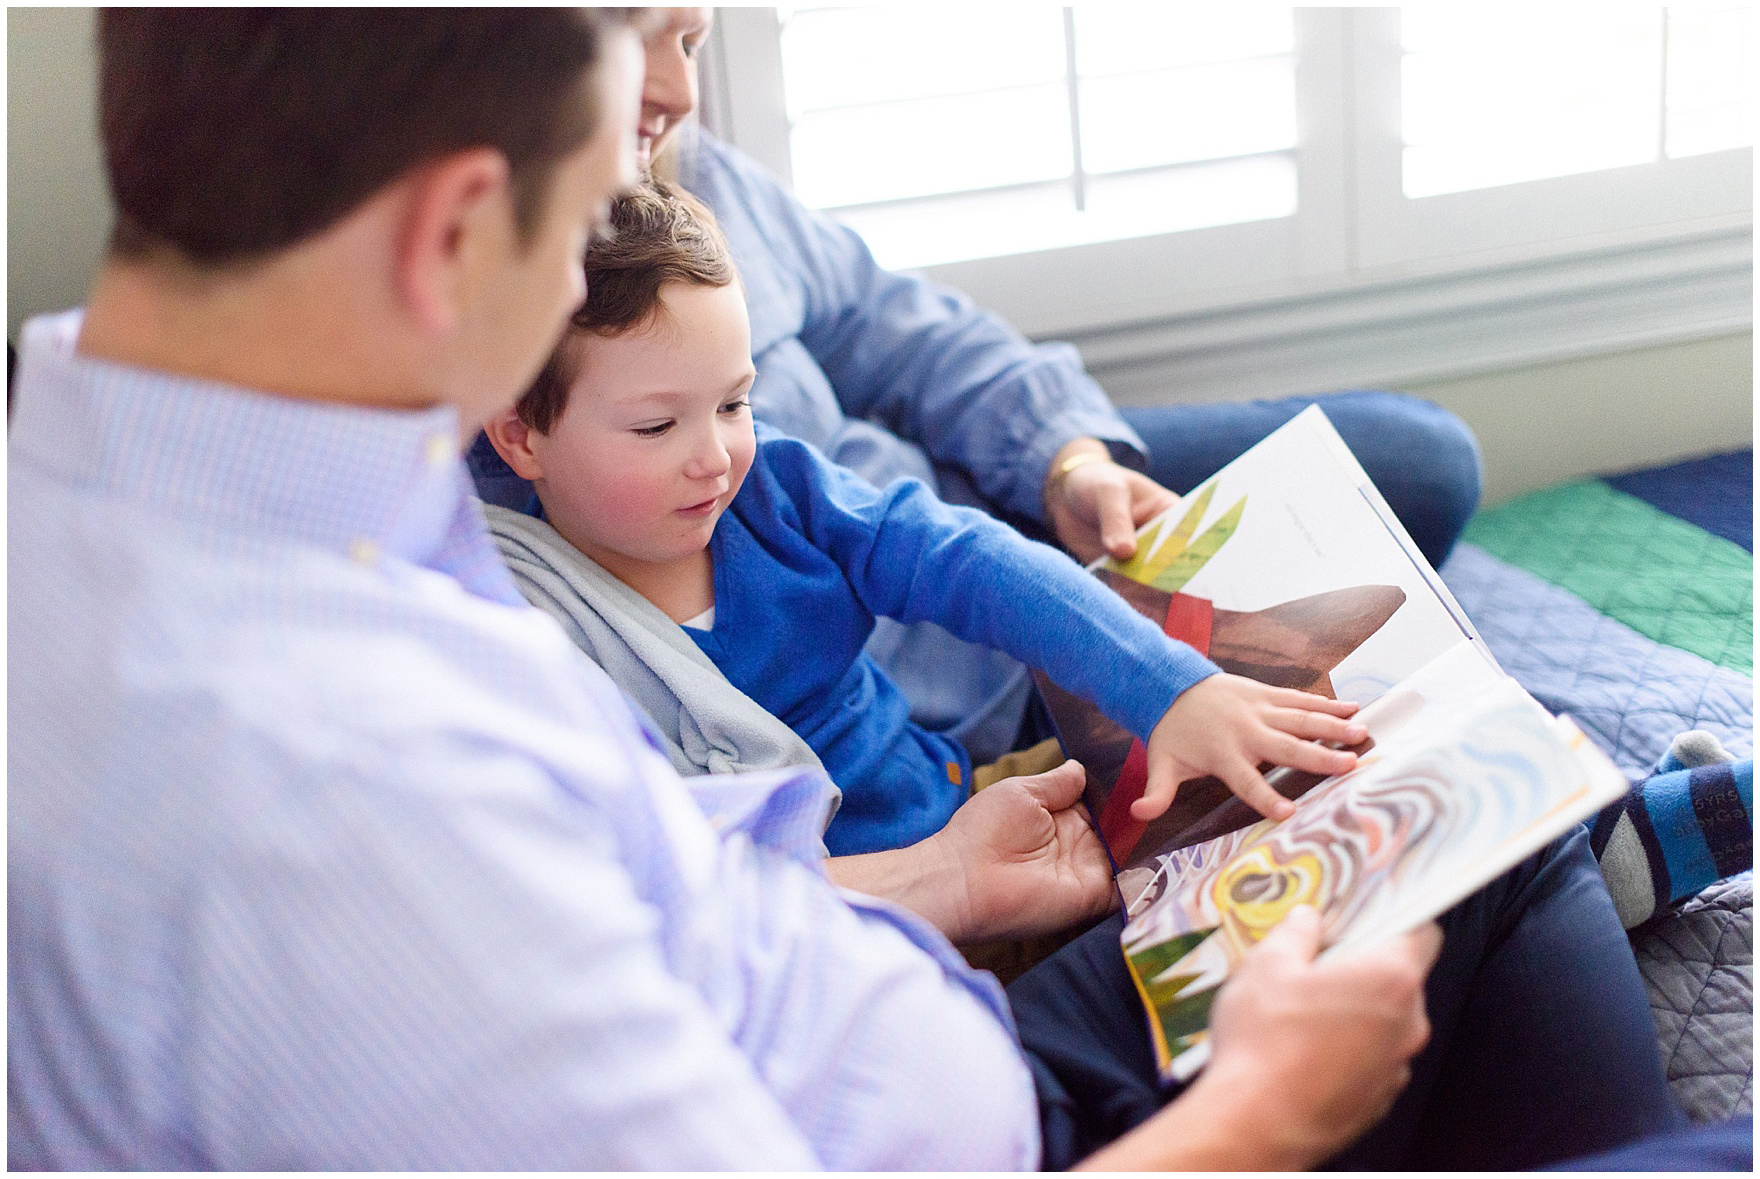 A boy reads a book with his parents during an at home family session.